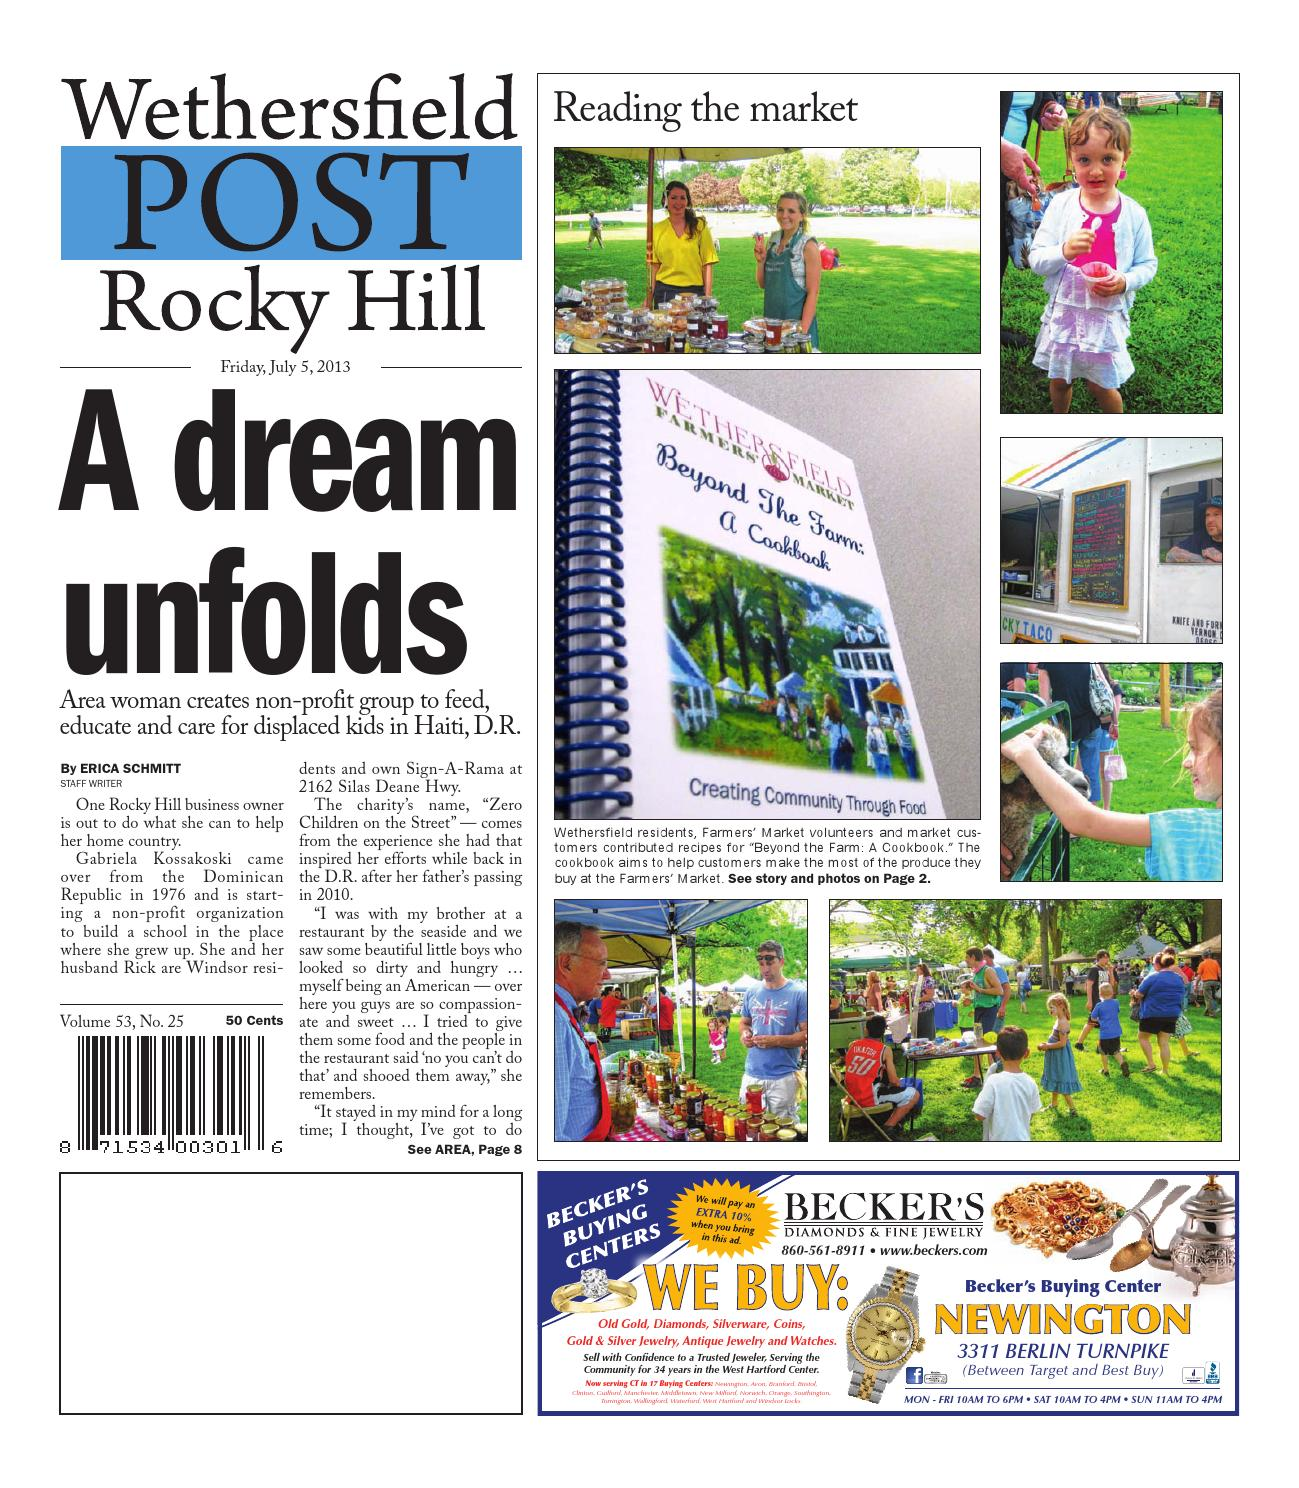 eaa3b254d1d Wethersfield Post - Rocky Hill Post 07-05-2013 by Art Department - issuu